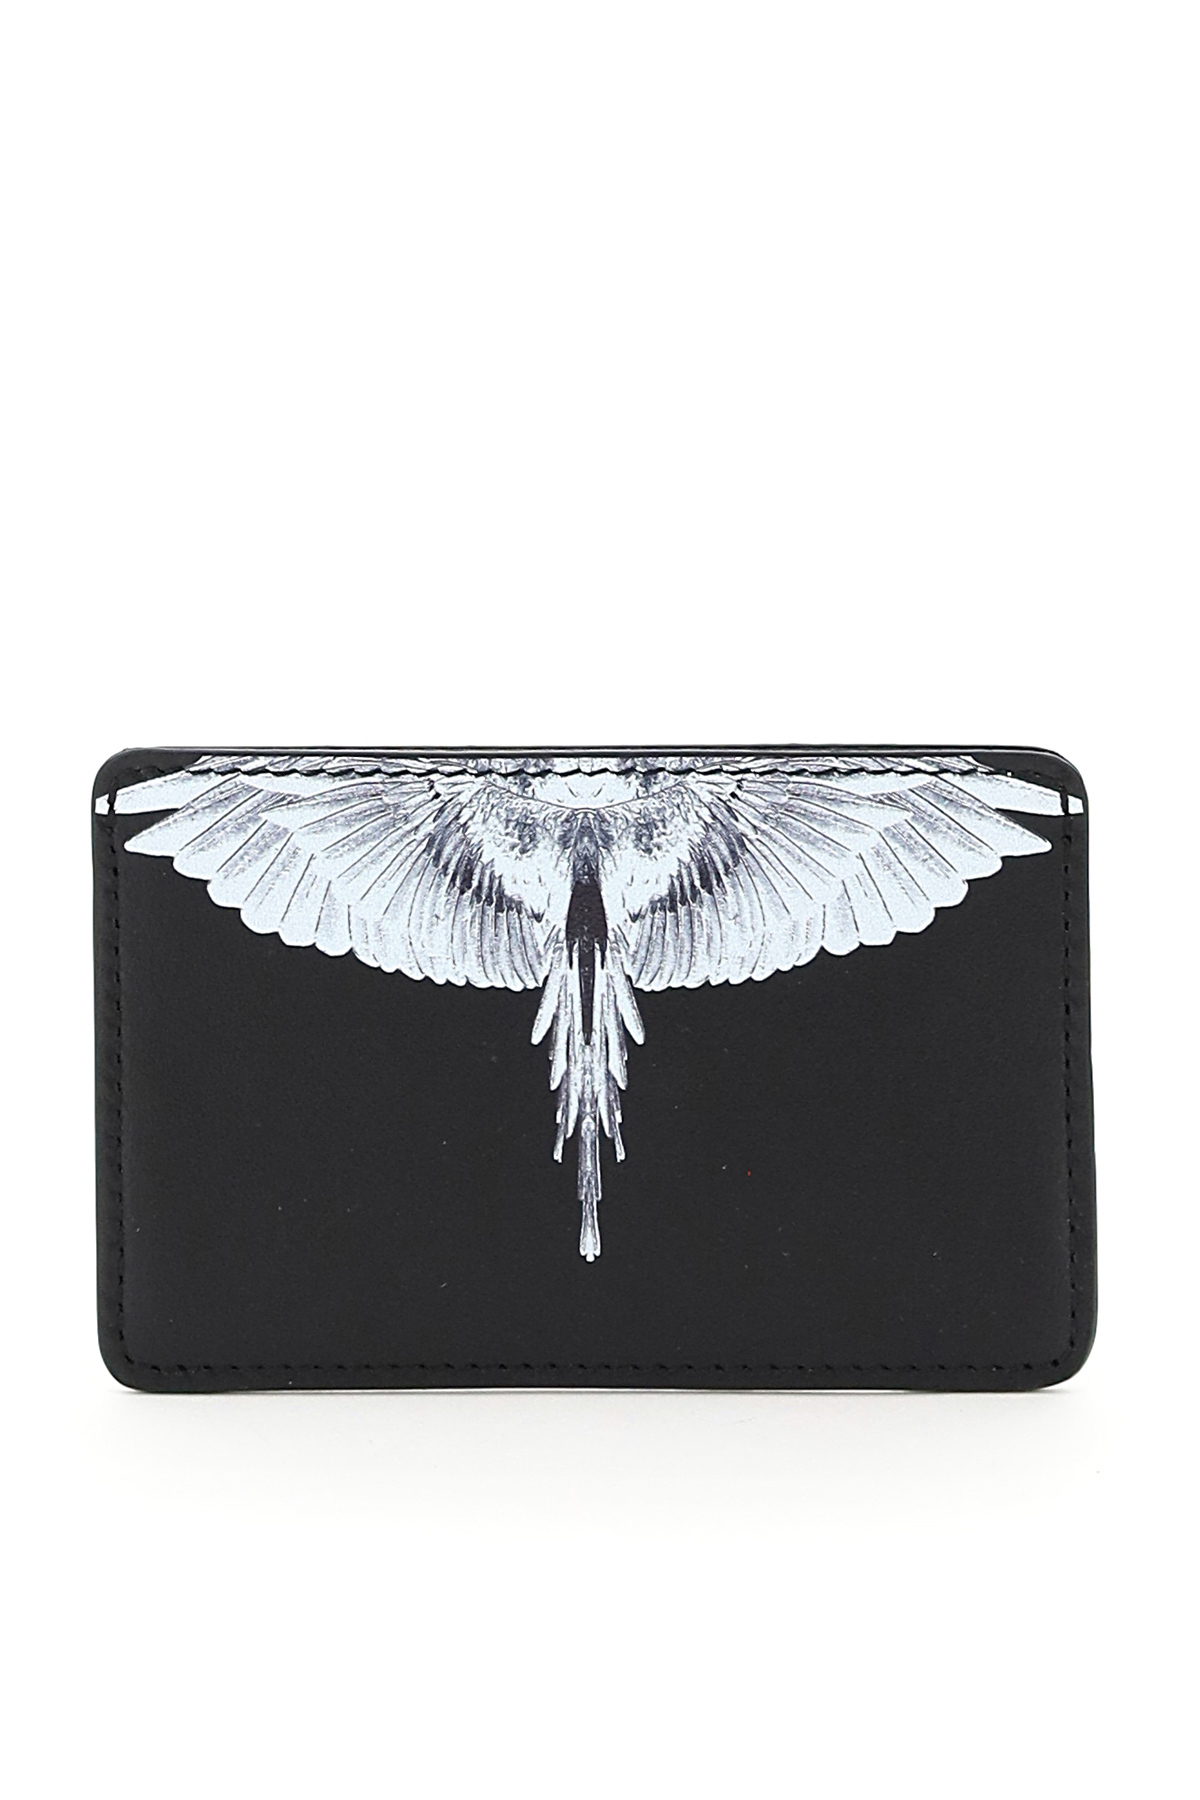 MARCELO BURLON DIAGONAL WINGS CARD HOLDER OS Black, White Leather